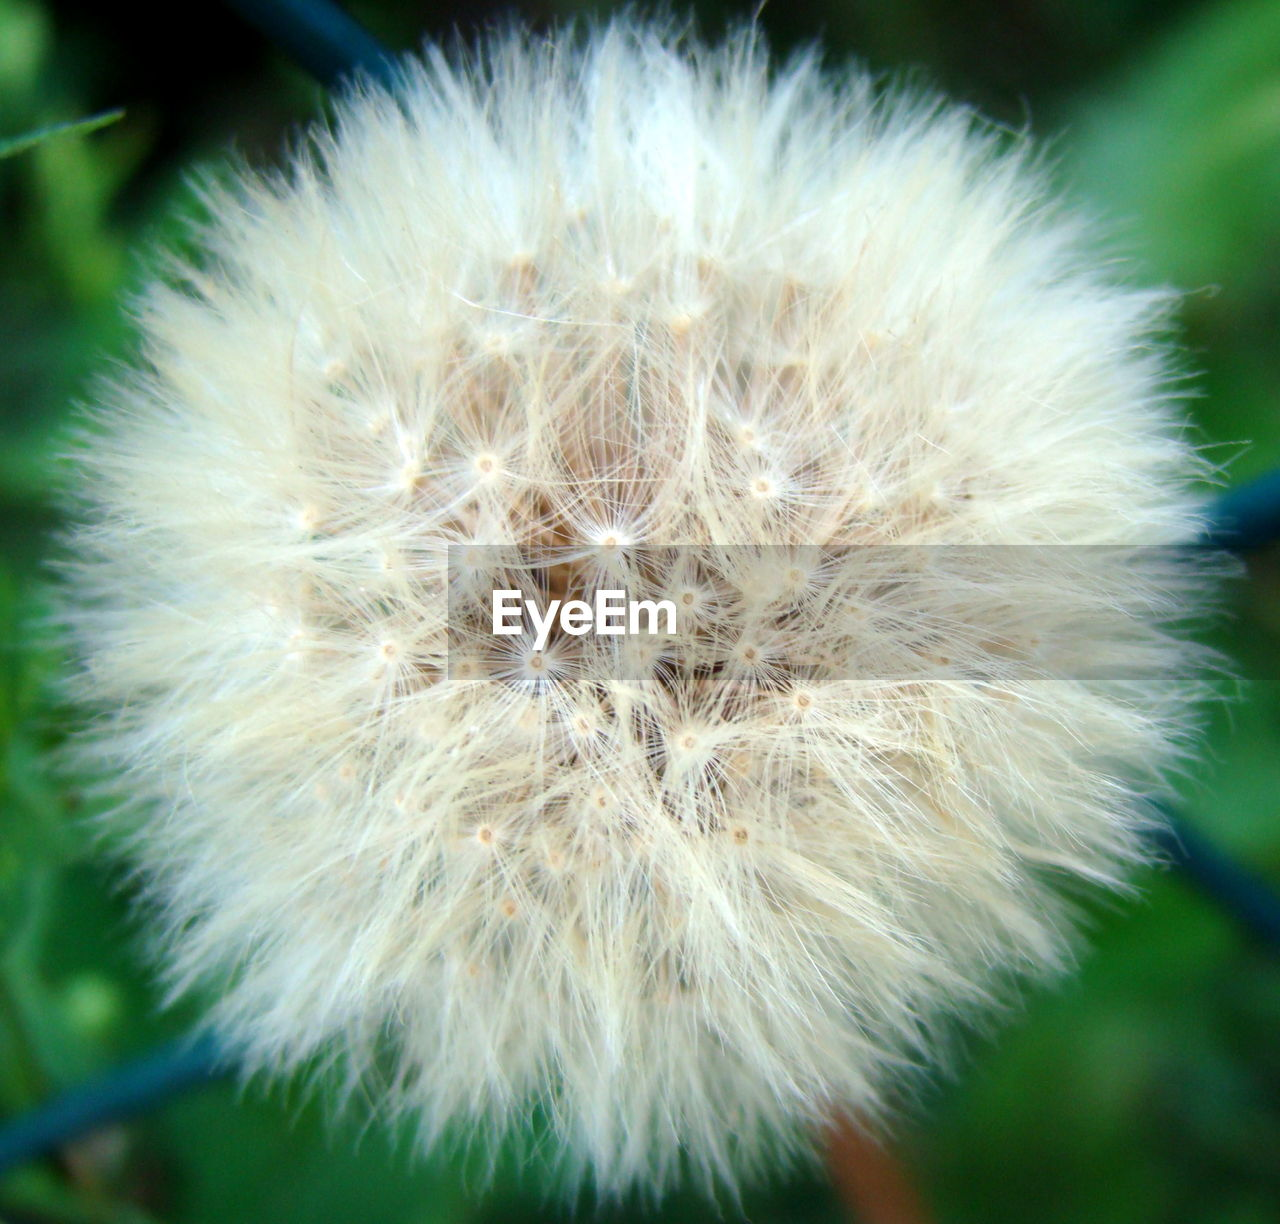 vulnerability, fragility, flower, close-up, dandelion, flowering plant, inflorescence, plant, beauty in nature, growth, freshness, focus on foreground, flower head, white color, nature, no people, softness, day, outdoors, dandelion seed